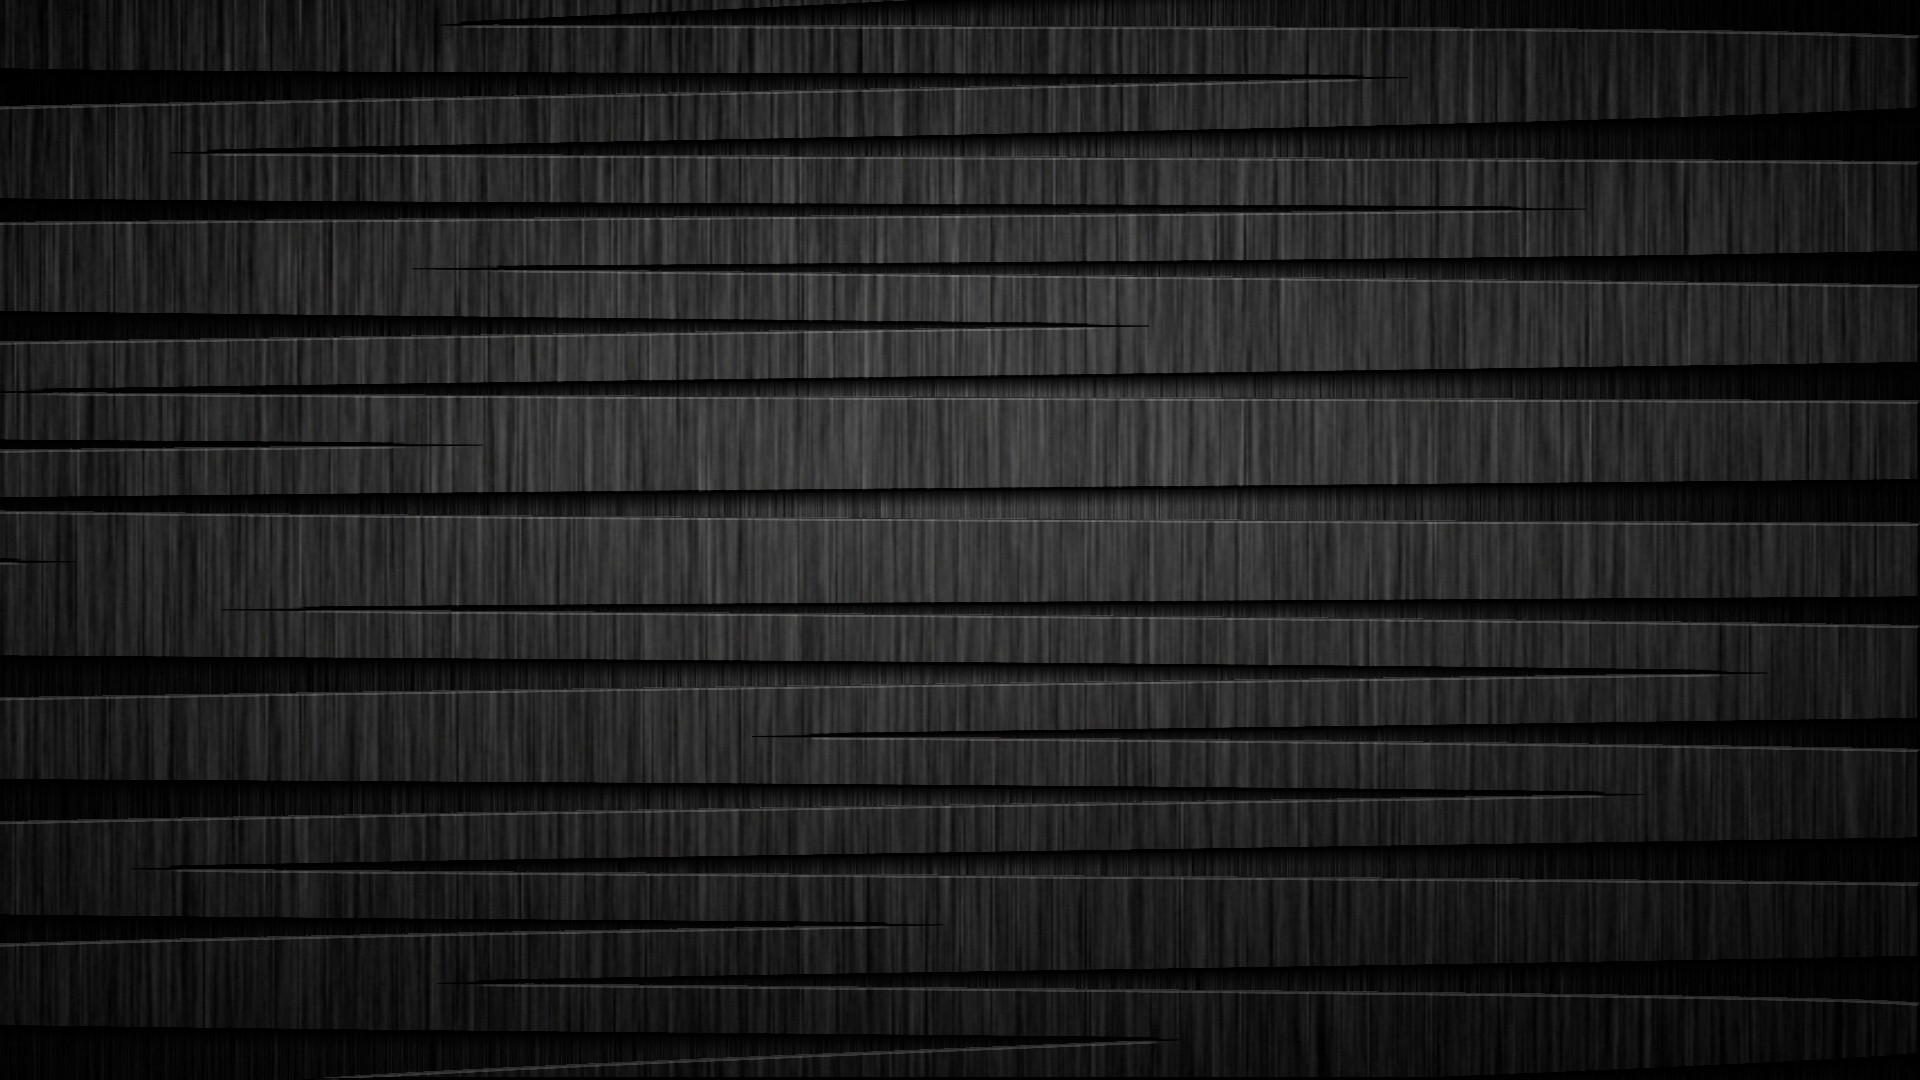 wallpaper textures black textured images 1920x1080 1920x1080